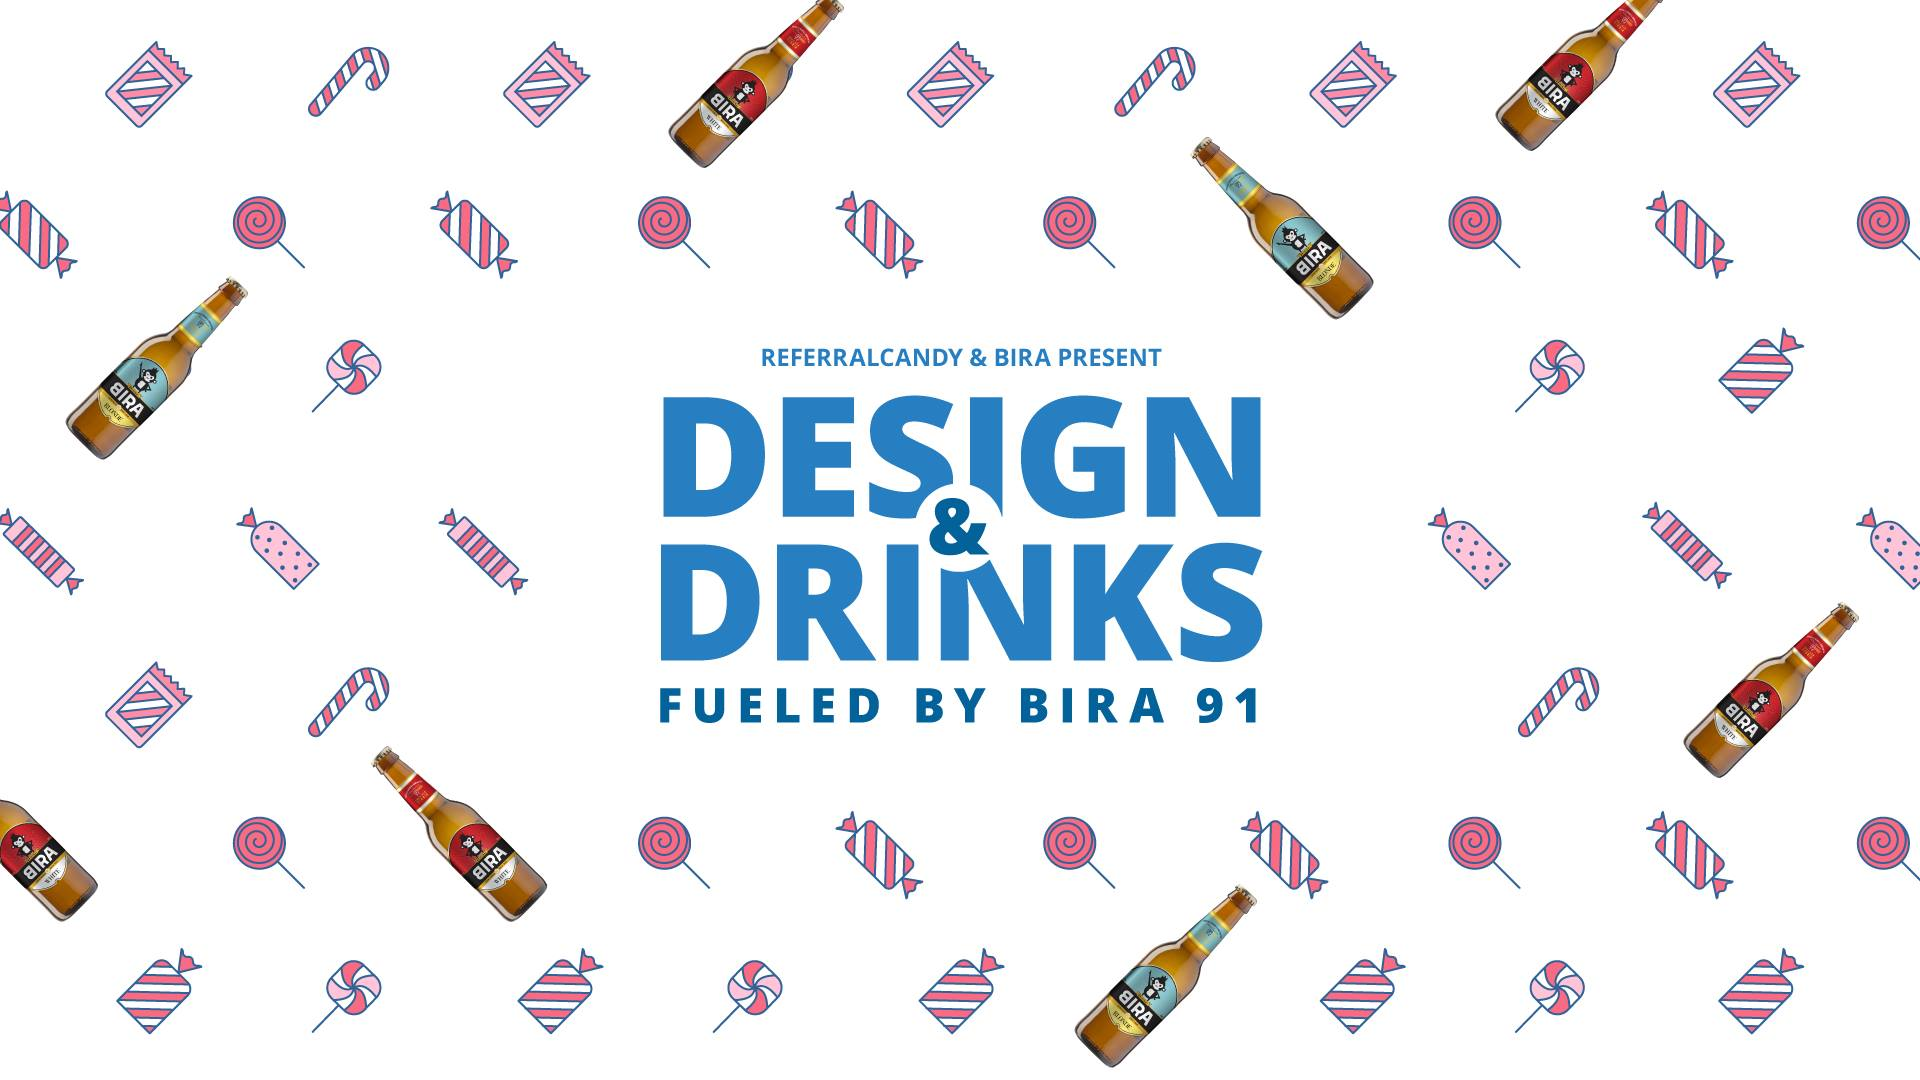 design-drinks-bira